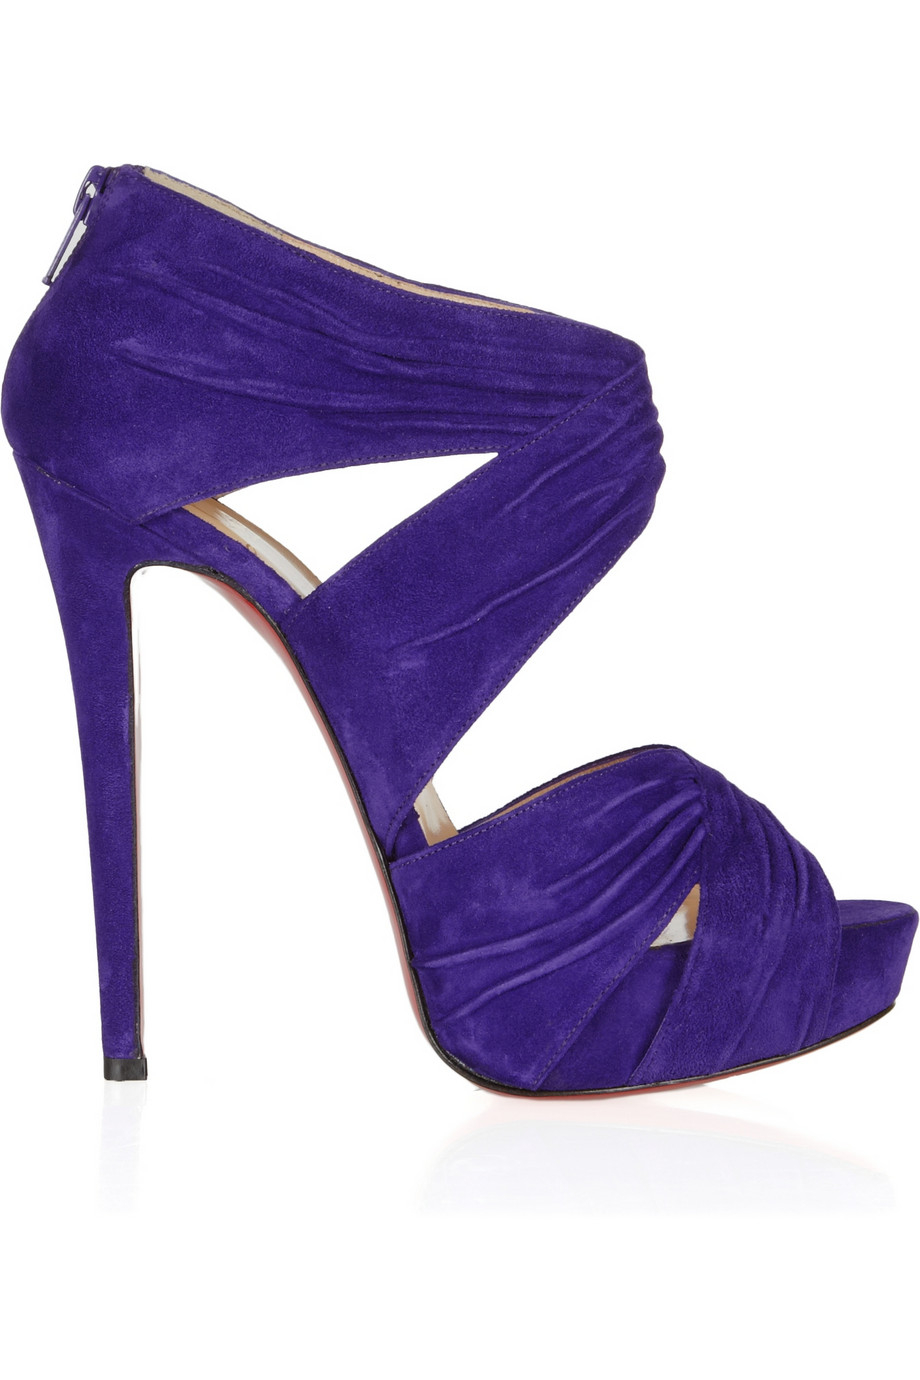 Lyst Christian Louboutin Bandra 140 Ruched Suede Sandals